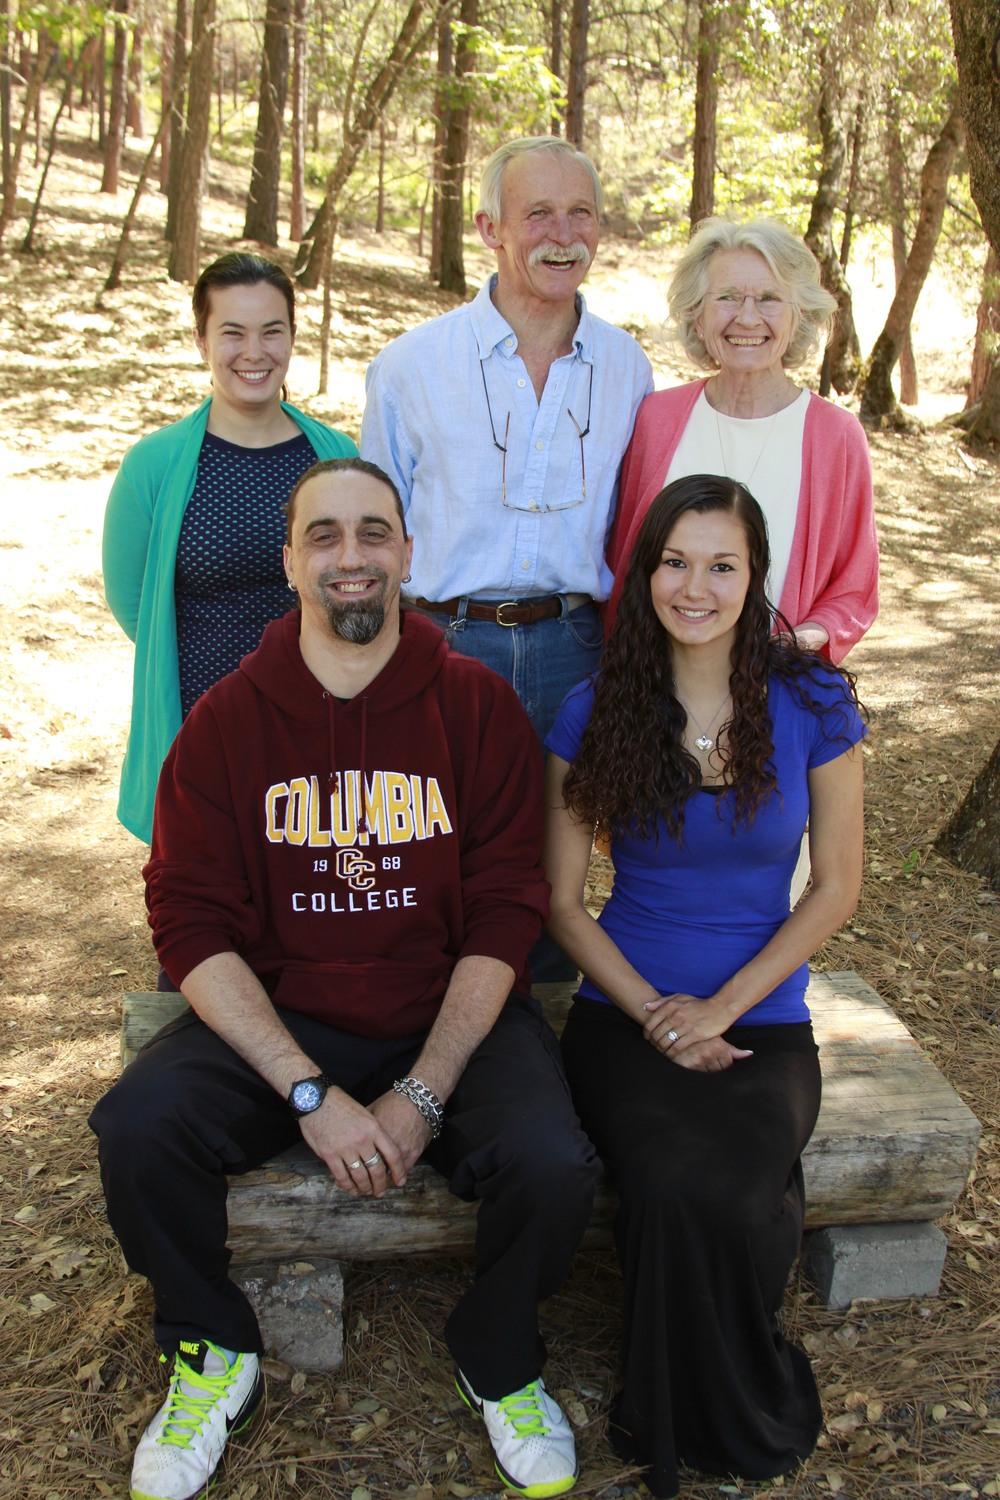 Future Promise 2015 recipients Orpheus Buster Brown and Jessie K. Perez (front row) with Nalatie Alpers, Ted Hamilton and Paula Clarke (back row).